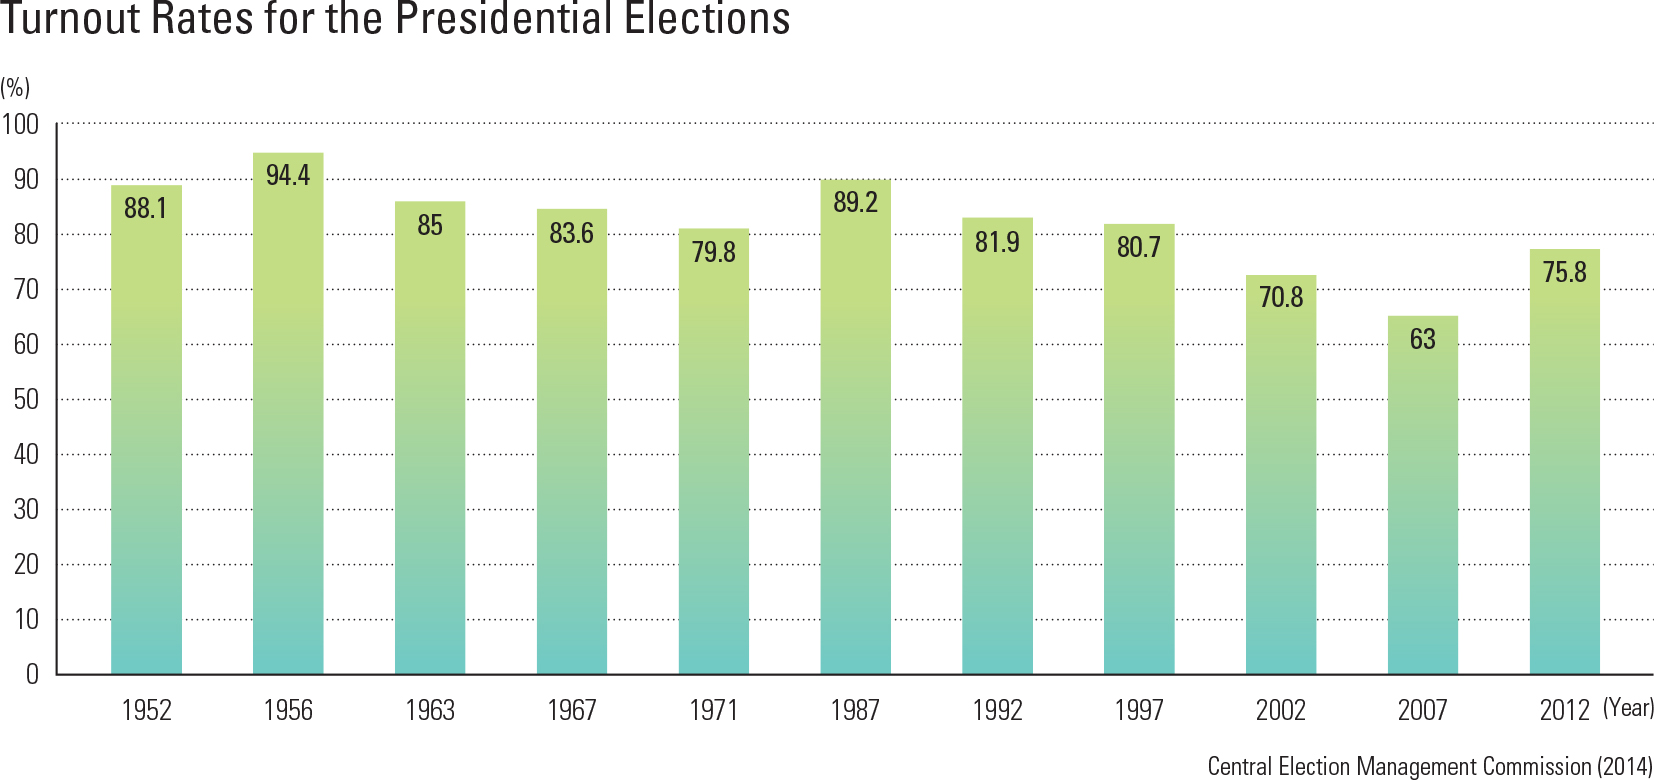 "turnout Rates for the Presidential Elections<p class=""oz_zoom"" zimg=""http://imagedata.cafe24.com/us_3/us3_228-2_2.jpg""><span style=""font-family:Nanum Myeongjo;""><span style=""font-size:18px;""><span class=""label label-danger"">UPDATE DATA</span></span></p>"